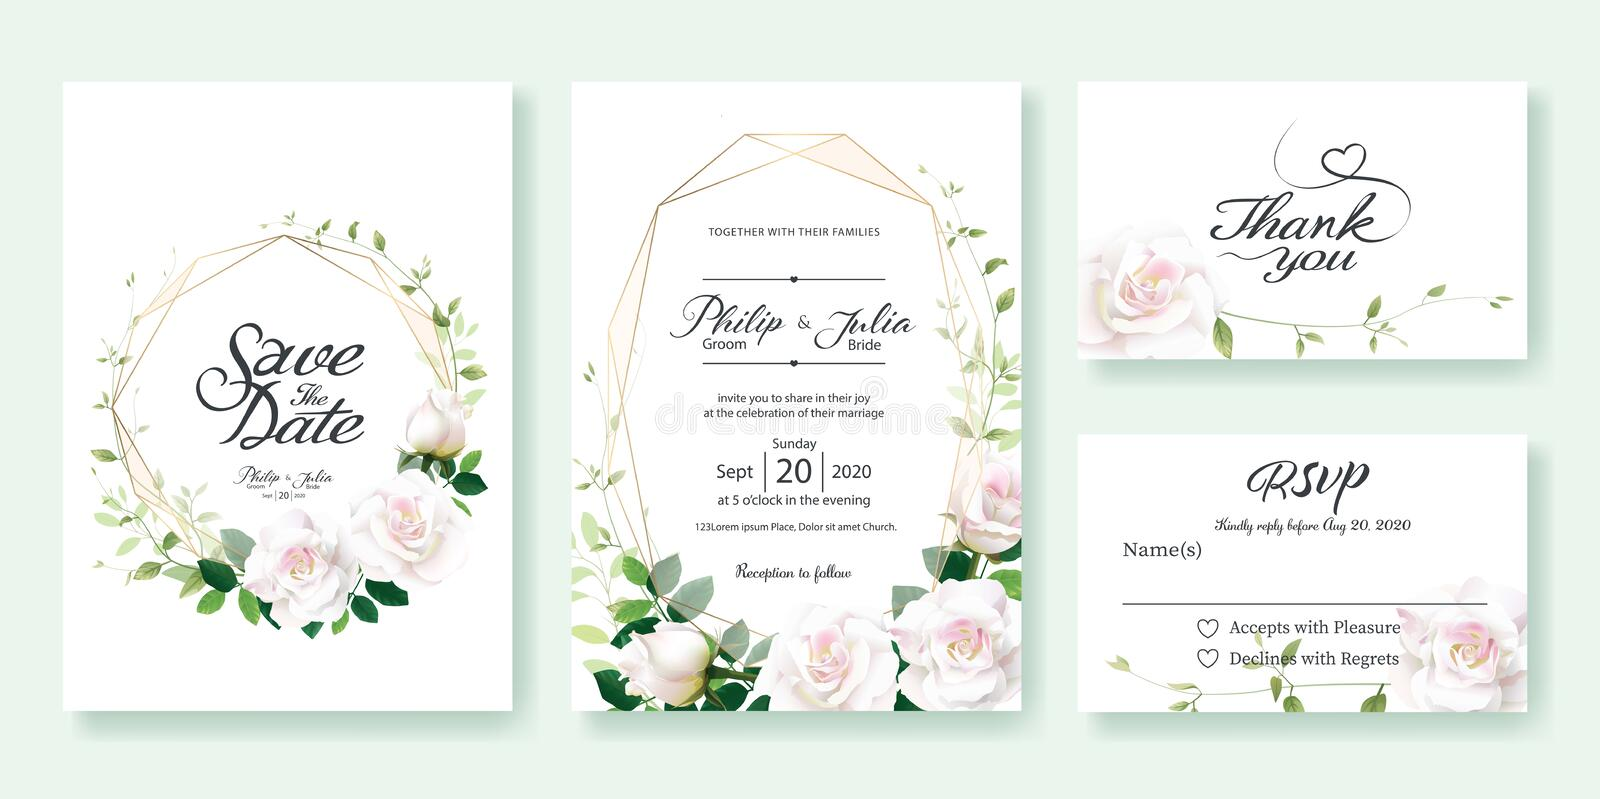 Wedding Invitation, save the date, thank you, rsvp card Design template. Vector. White rose flower, lemon leaf, Ivy leaves. royalty free illustration